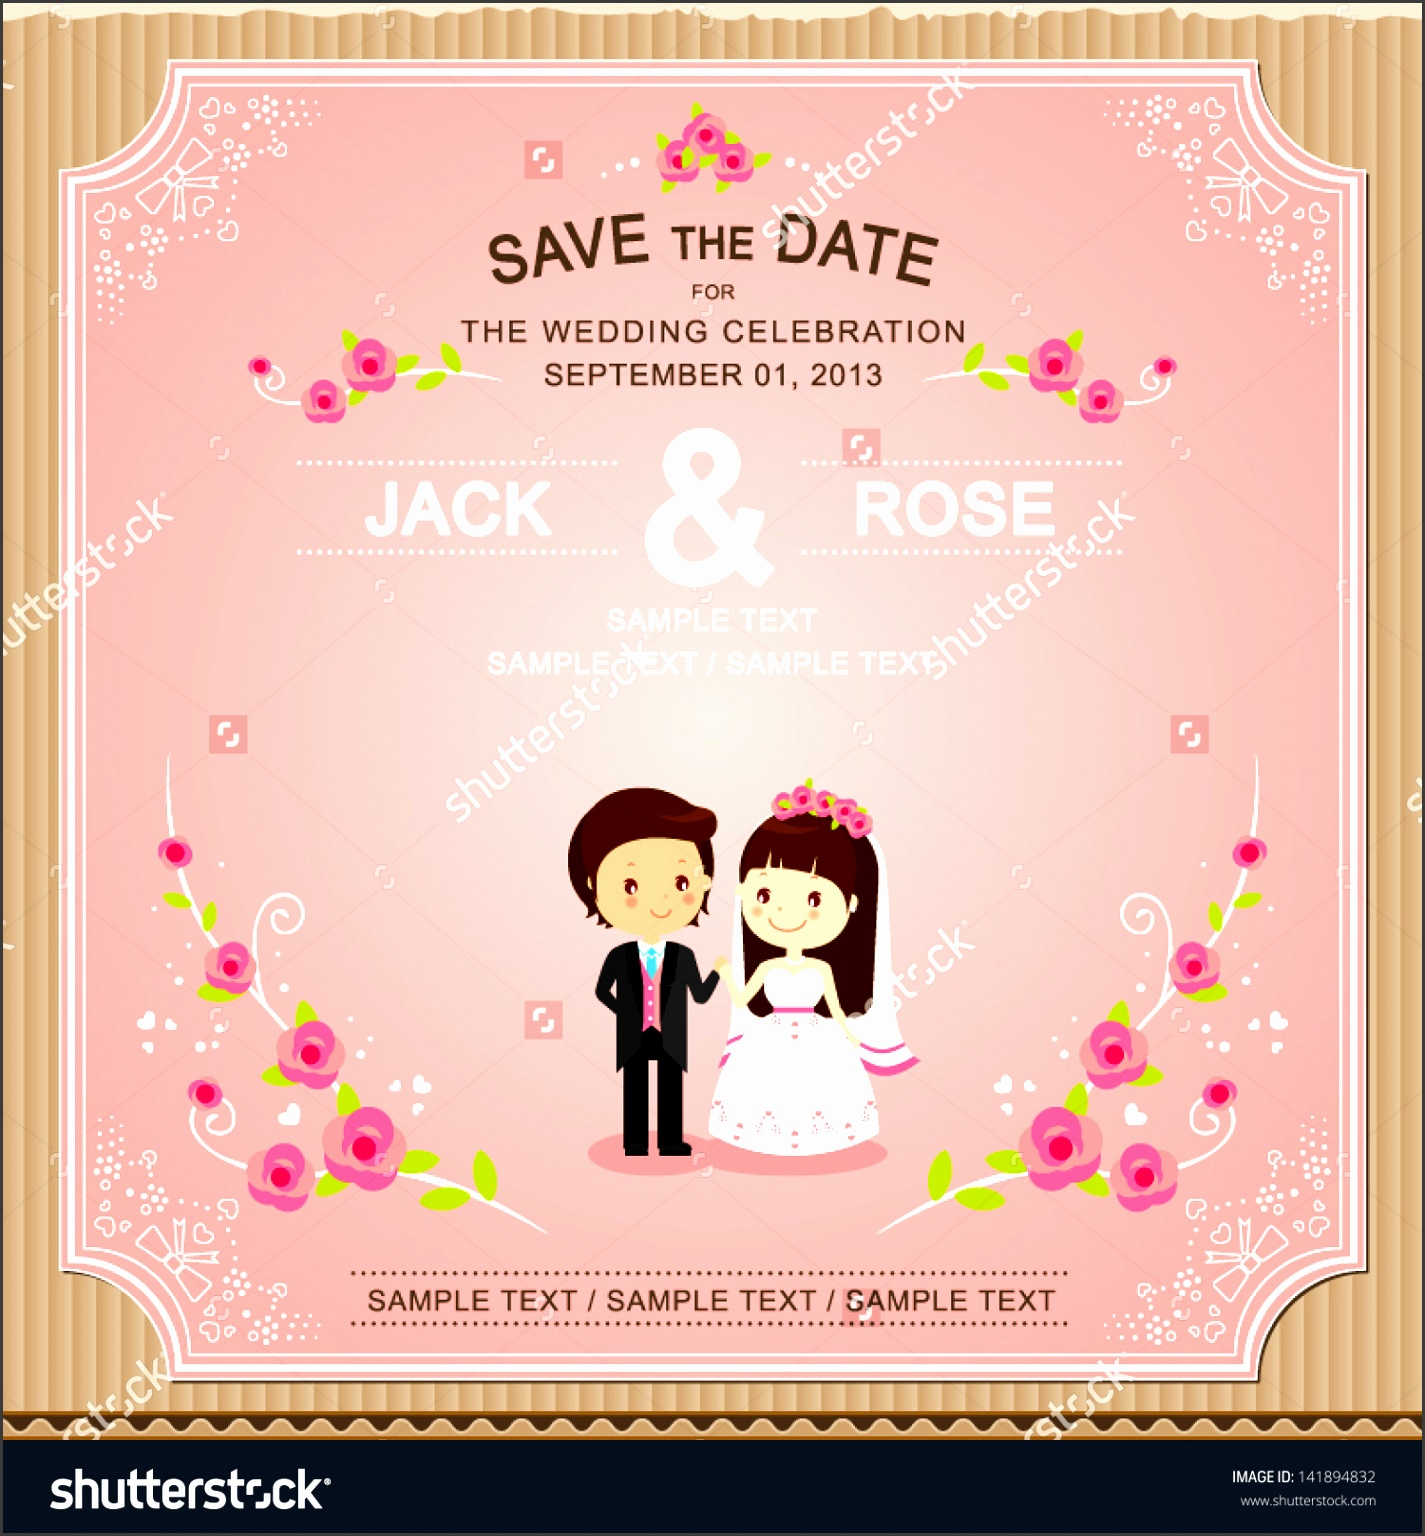 Innovative Wedding Invitation Cards Samples Marriage Invitation Card Template Ctsfashion